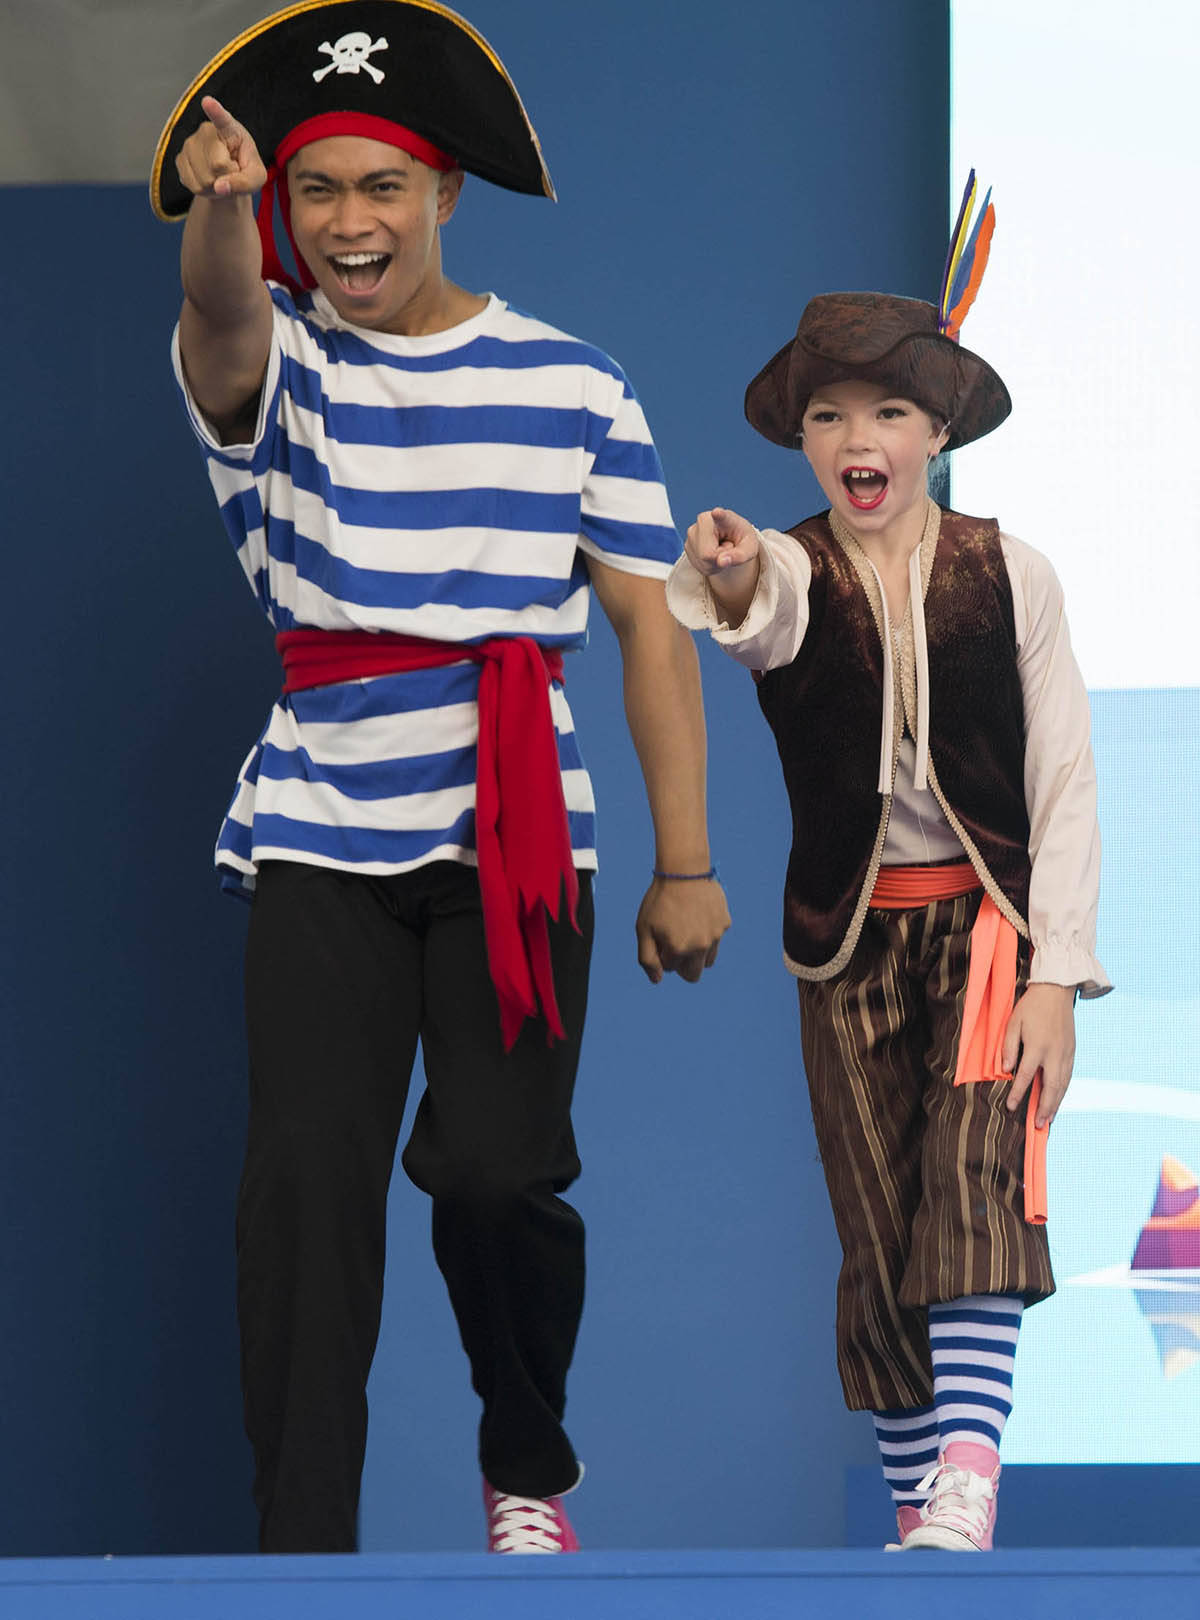 """Surrey's Josh Lalisan, left, and Emma Hader of Maple Ridge, right, perform in the """"Bones and Scully, 'Tis Fun to be a Pirate"""" show on the PNE Fair's BCAA ToonCity stage. The show runs three times daily, and is free with admission to the Fair. (Photo courtesy PNE/Craig Hodge)"""